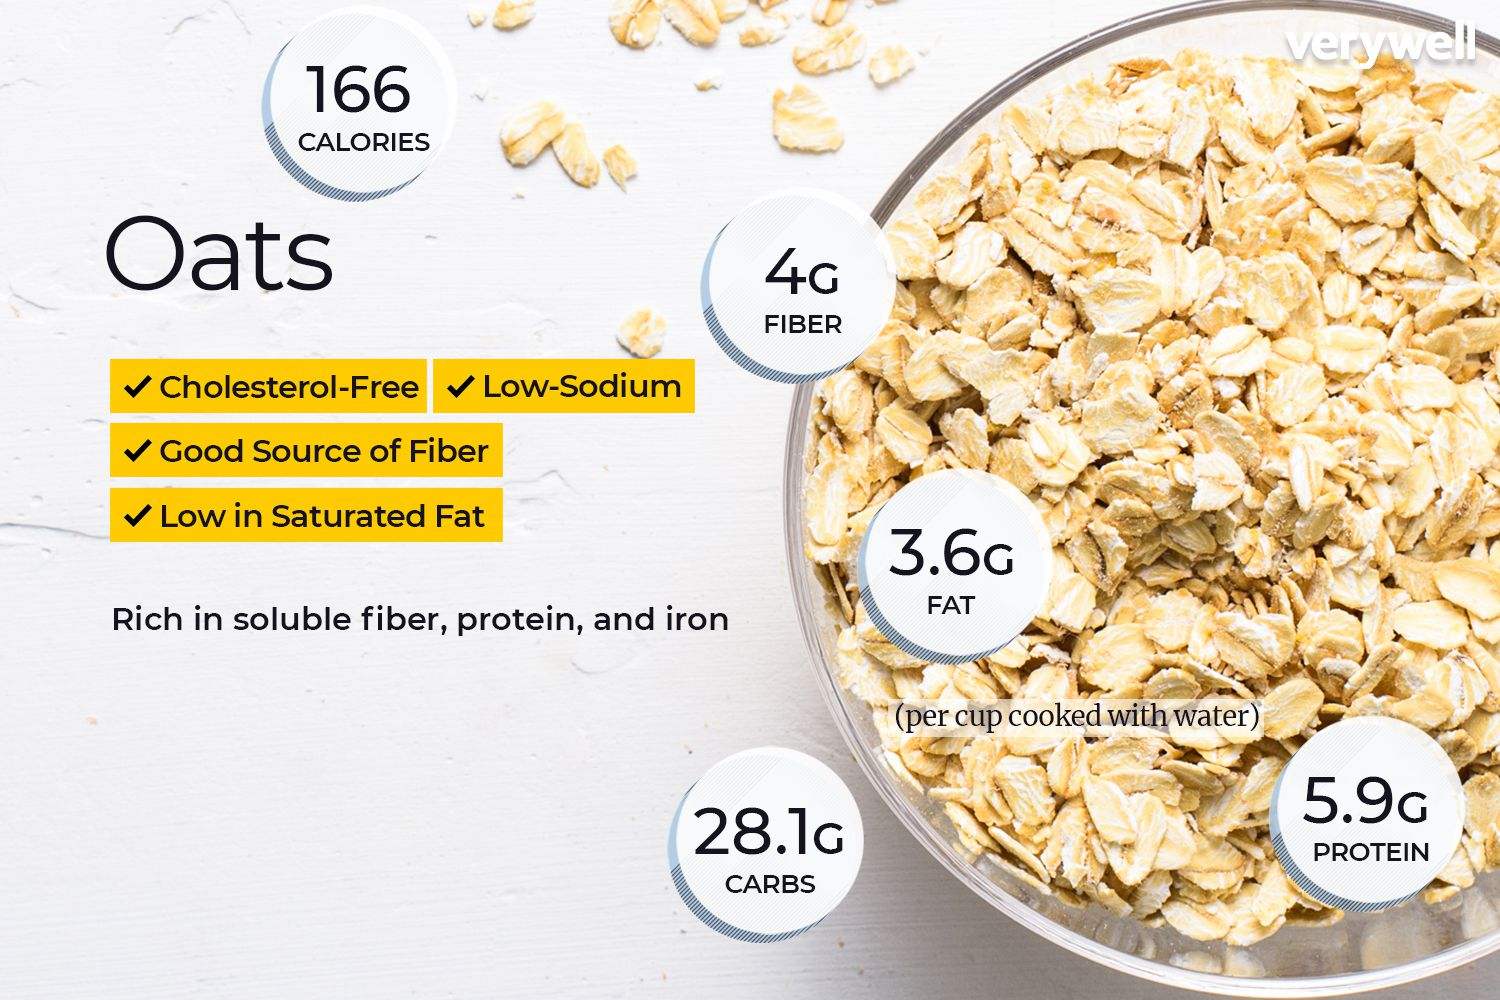 Oats Nutrition Facts: Calories and Health Benefits